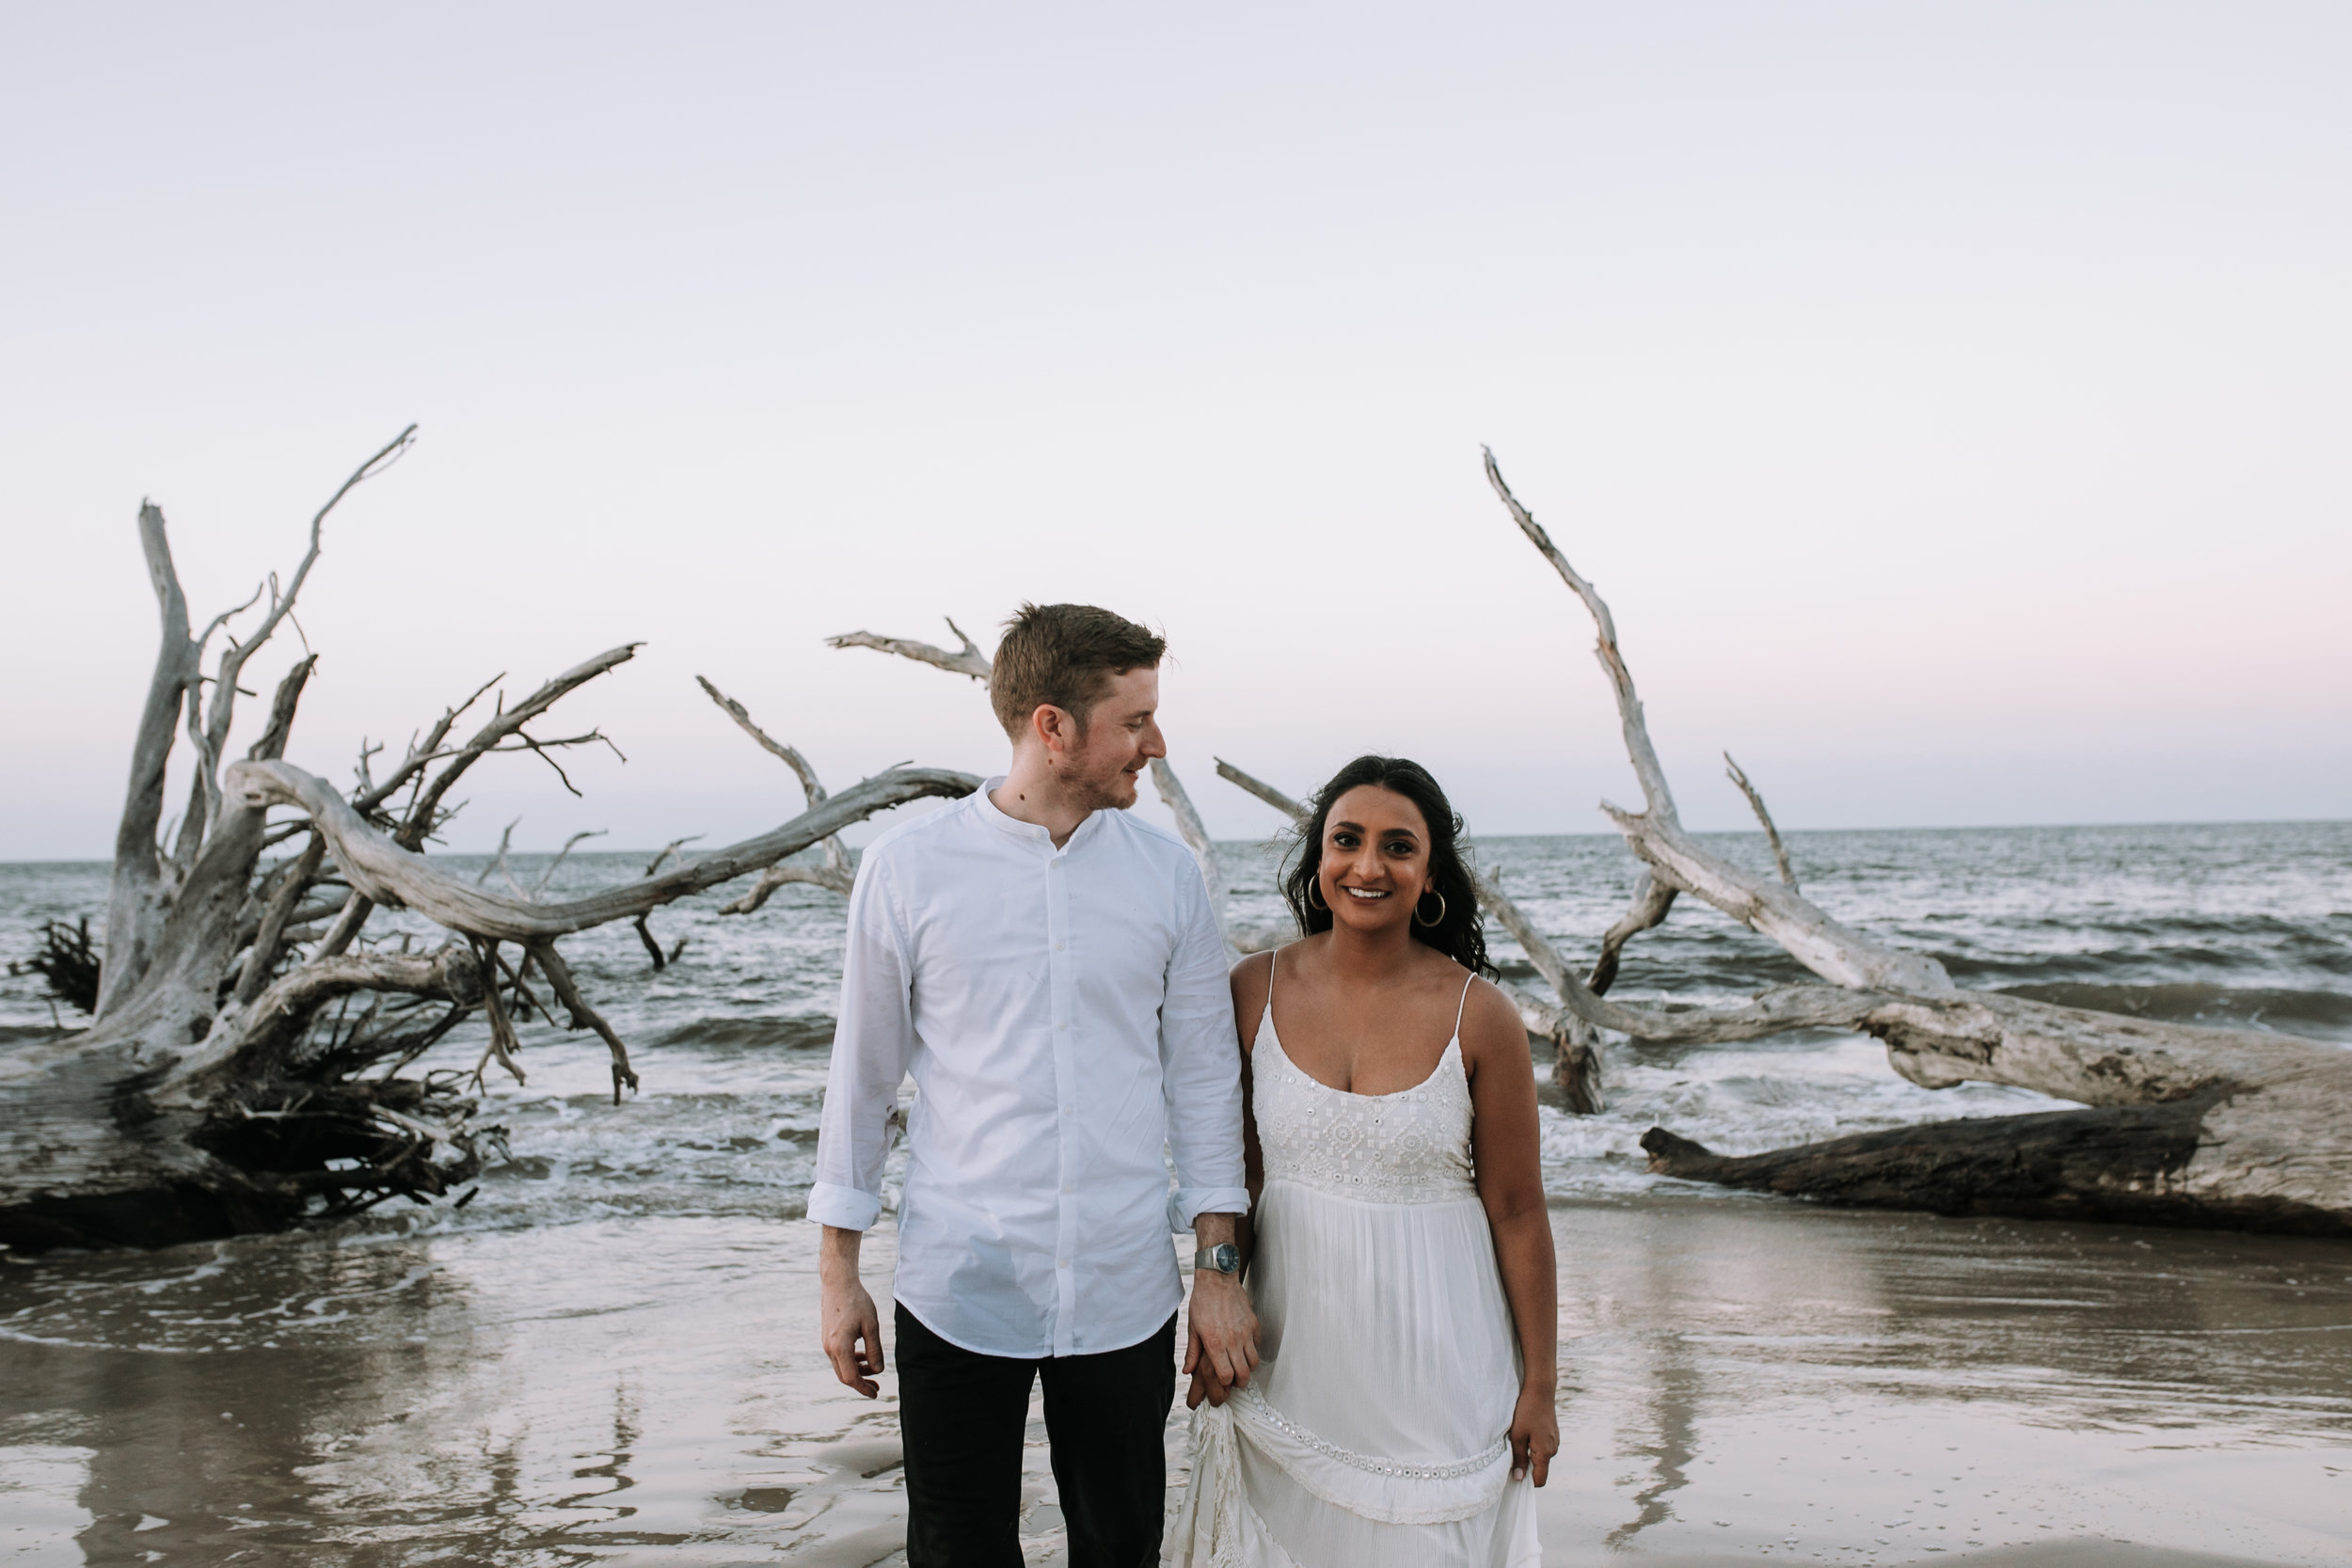 Driftwood-Beach-Jacksonville-Florida-Engagement-Rkm-Photography-185.jpg